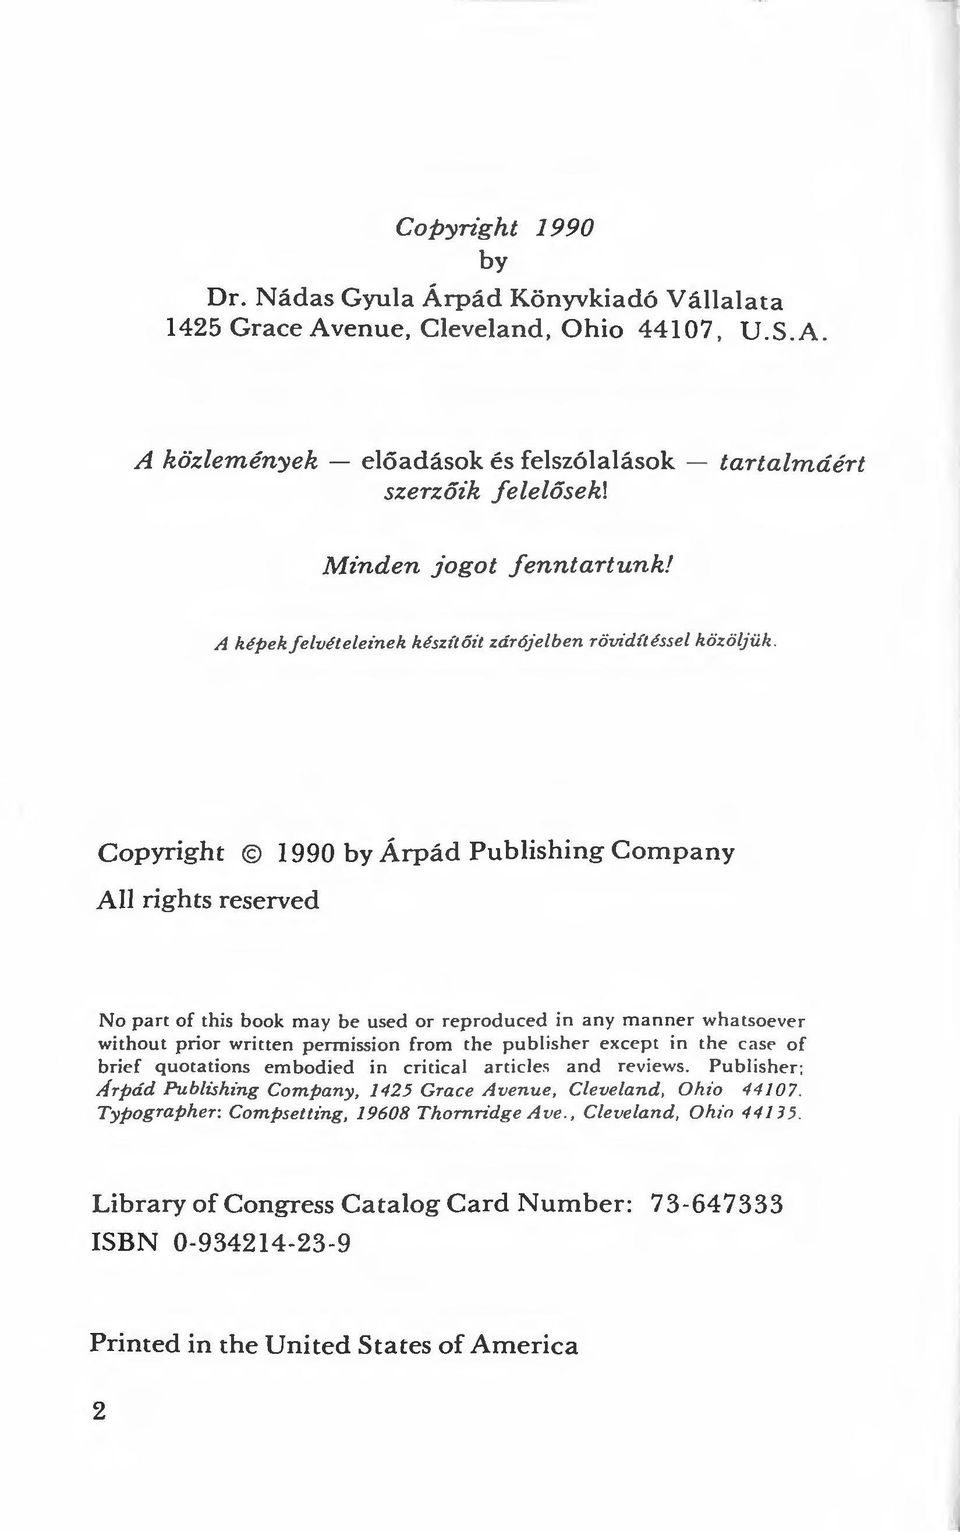 öljüh Copyright 1990 by Árpád Publishing Com pa ny Ali rights reserved No part of this book may be used or reproduced in any manne r whatsoever without prior written permission from the publisher